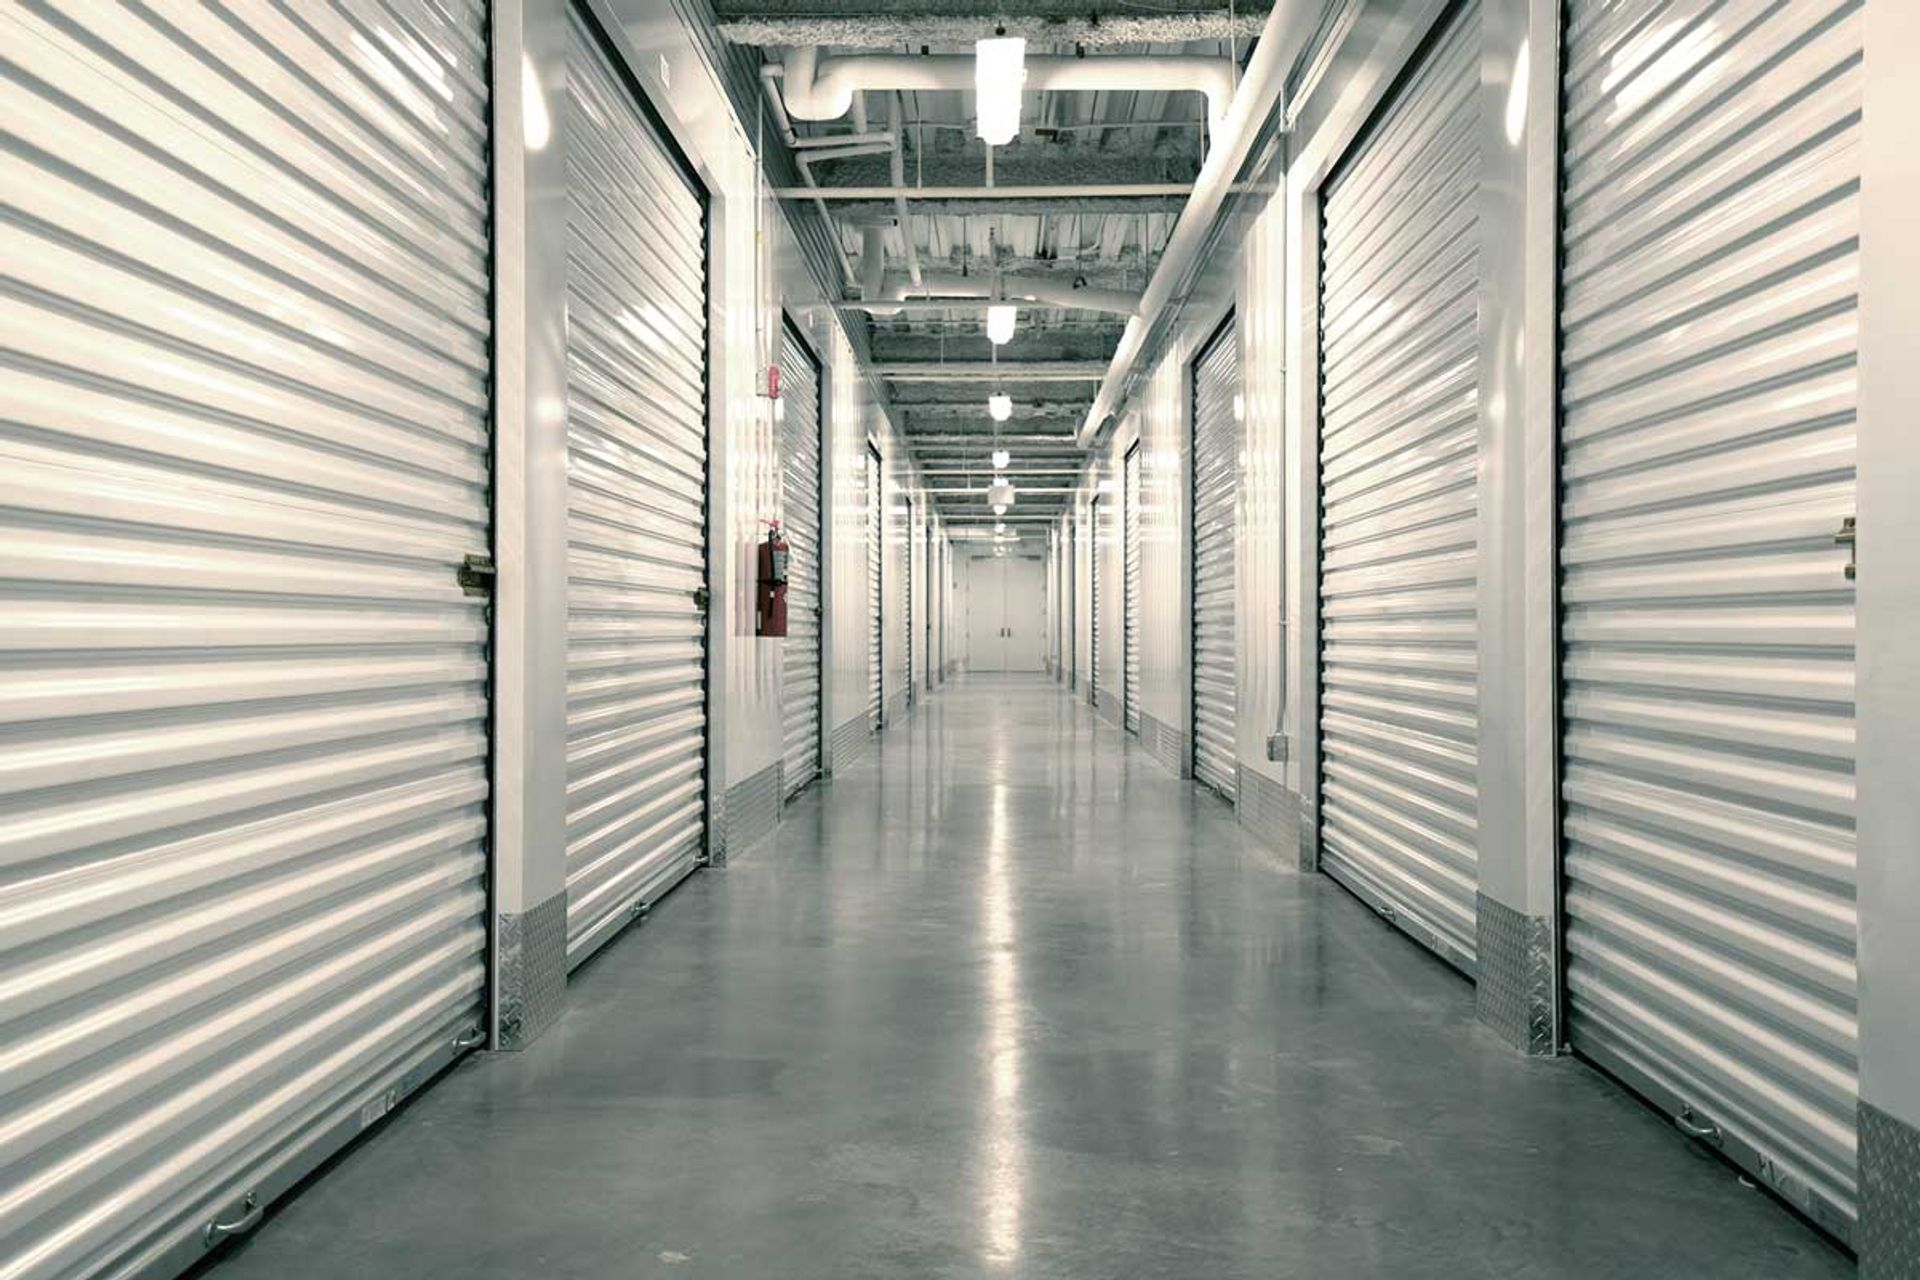 Arcis's 110,000 sq. ft state-of-the-art storage facility boasts the latest in high-tech security and has Foreign-Trade Zone status Carlos Alvarado/Arcis